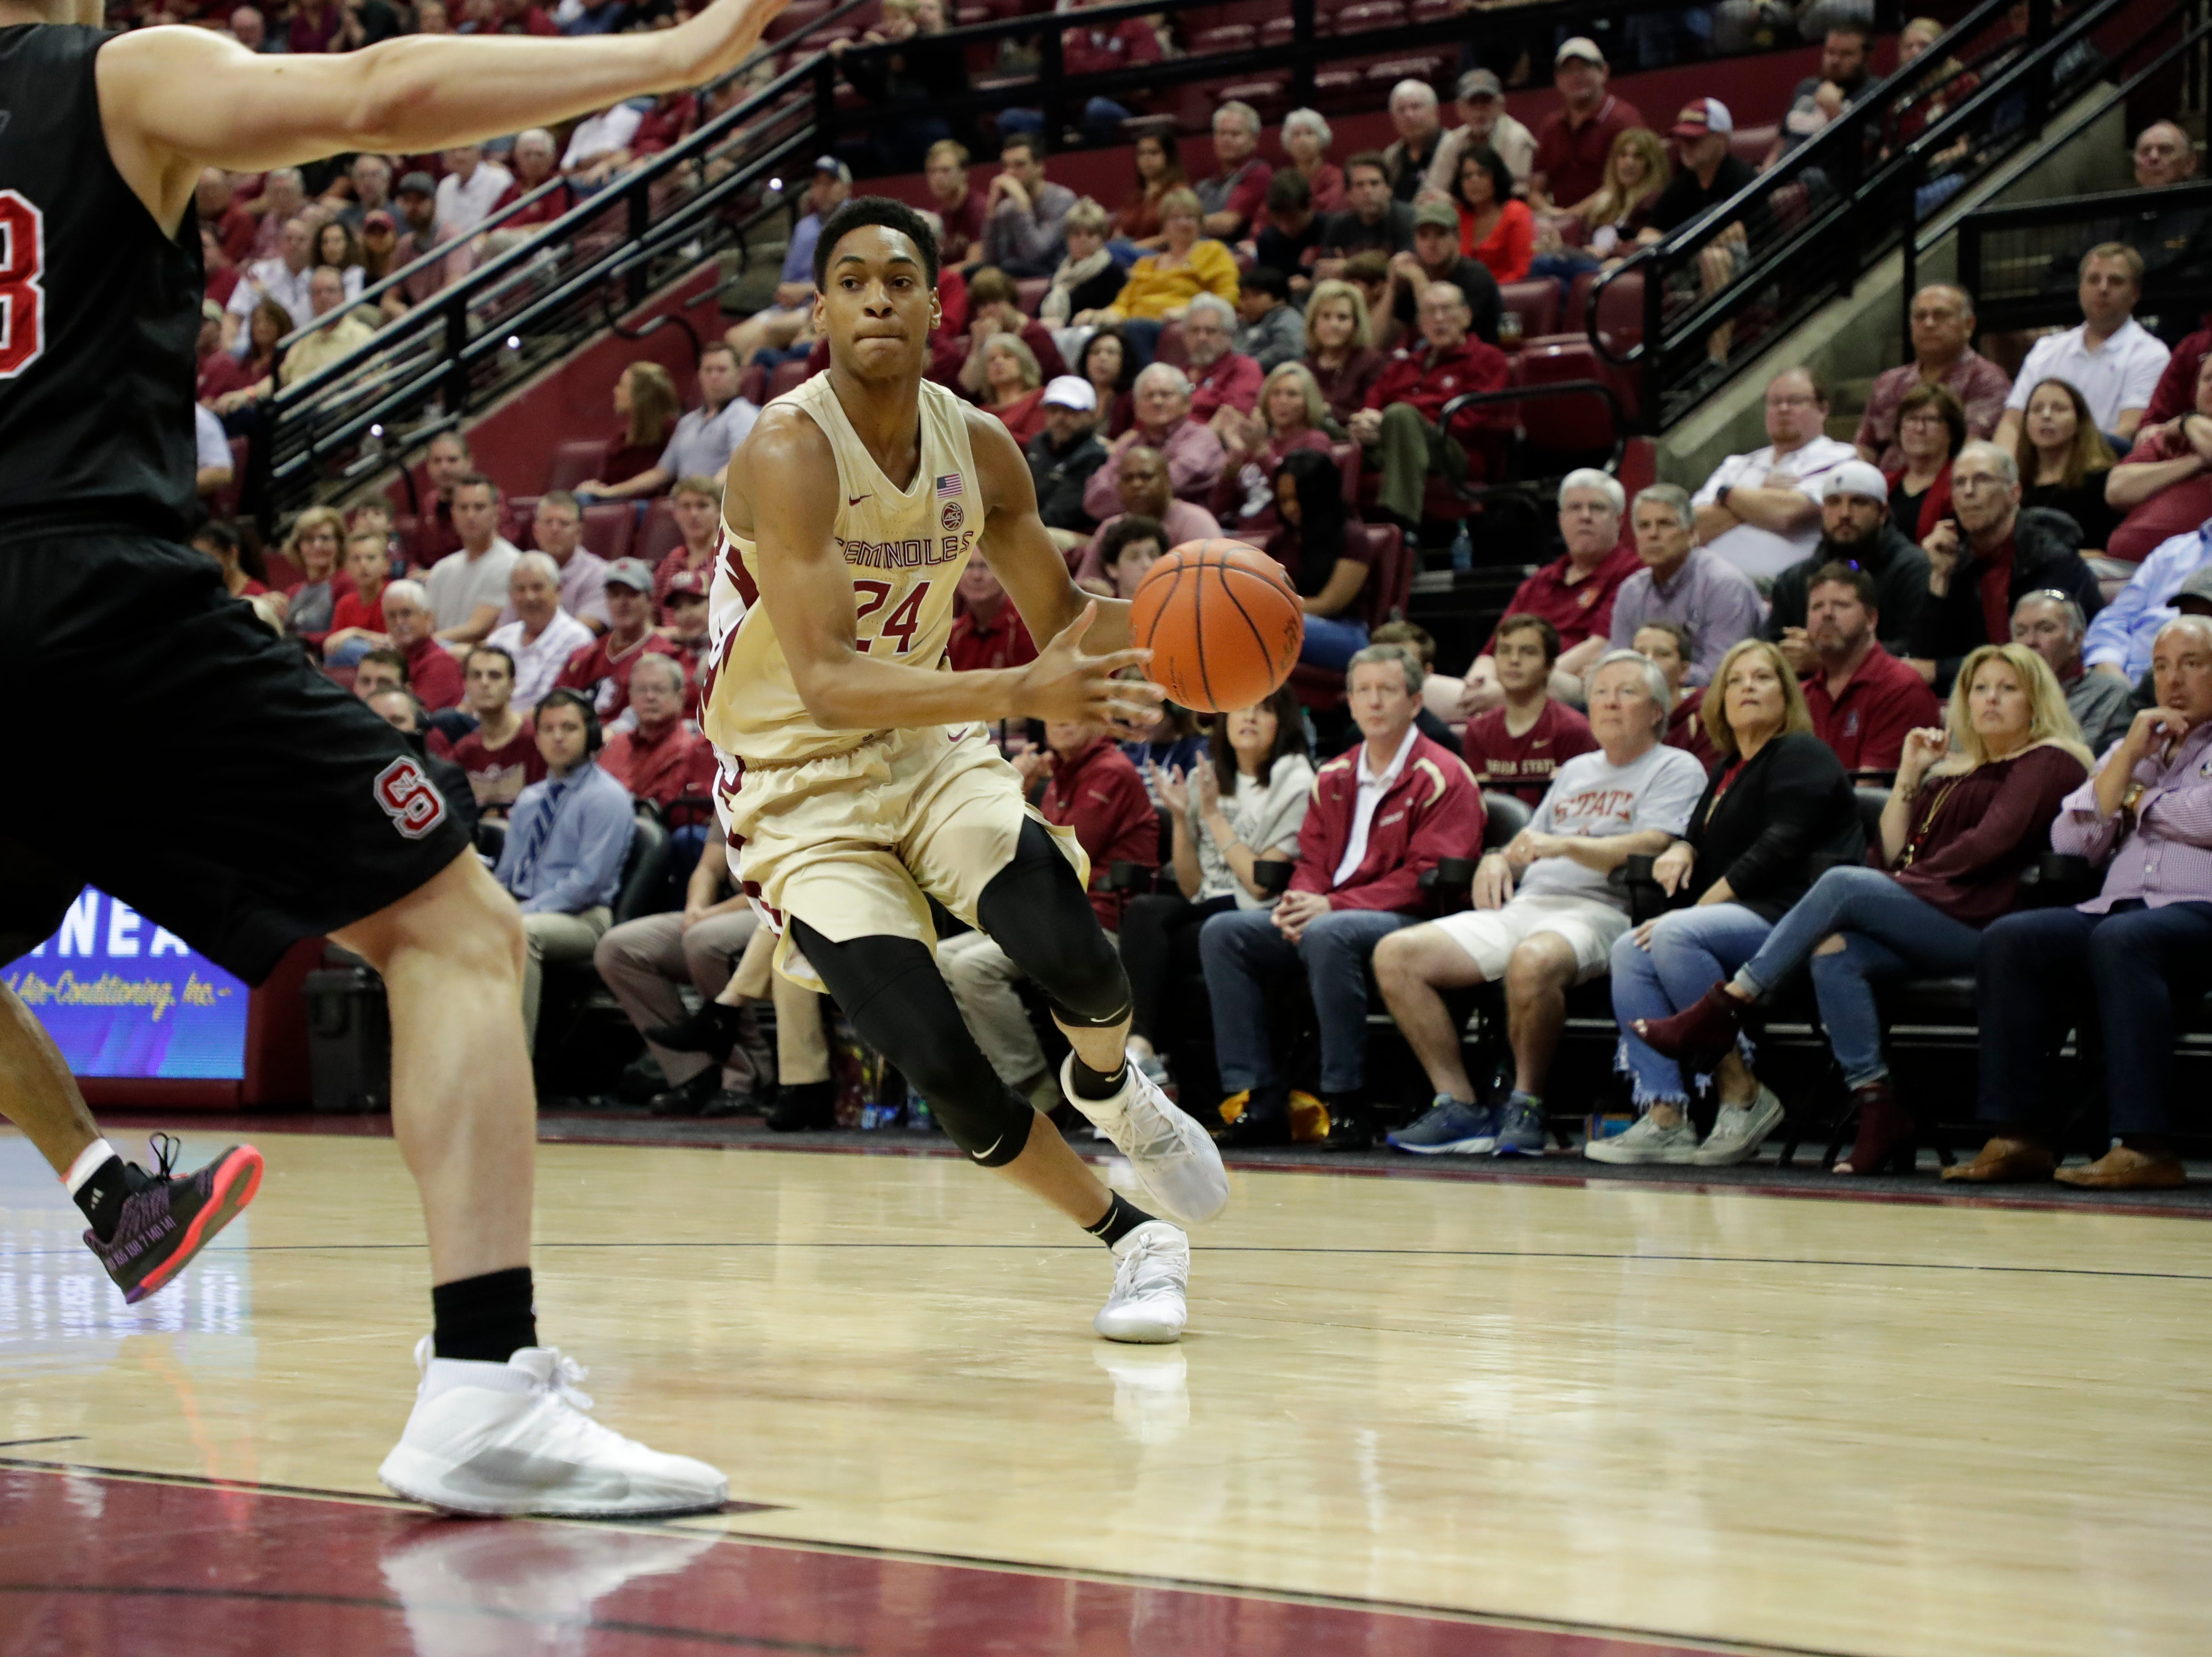 Florida State Seminoles guard Devin Vassell (24) drives the ball to the hoop. The Florida State Seminoles host the NC State Wolfpack at the Tucker Civic Center Saturday, March 2, 2019.